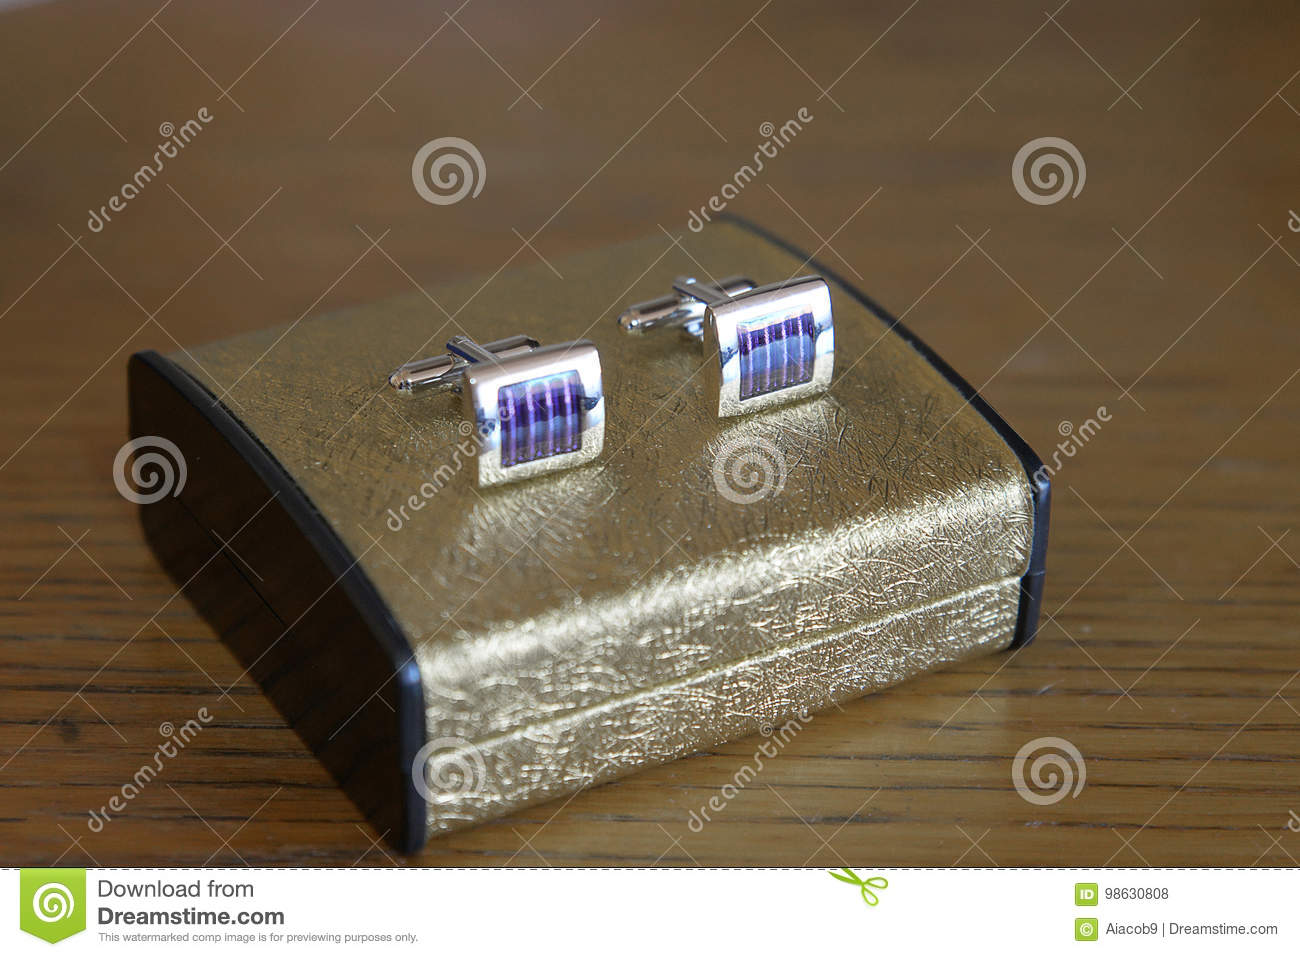 A pair of silver, platinum or white gold cuff links with blue enamel positioned on an elegant golden box